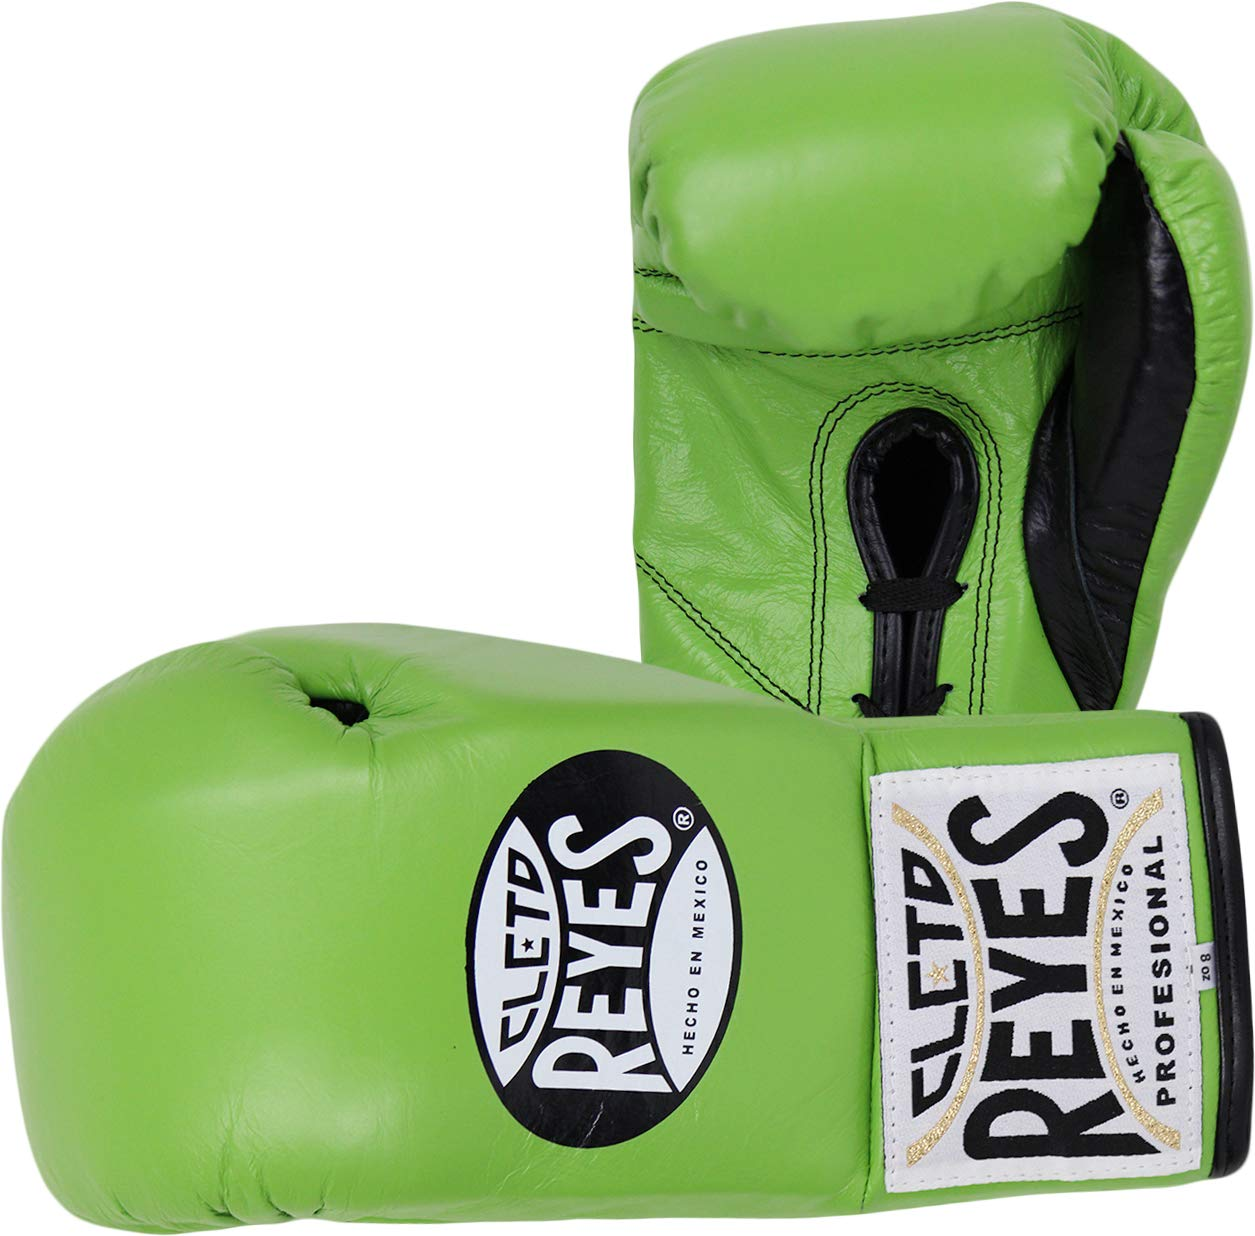 Cleto Reyes Official Professional Boxing Gloves — Best Fighting Gloves For Training and Professional Fights